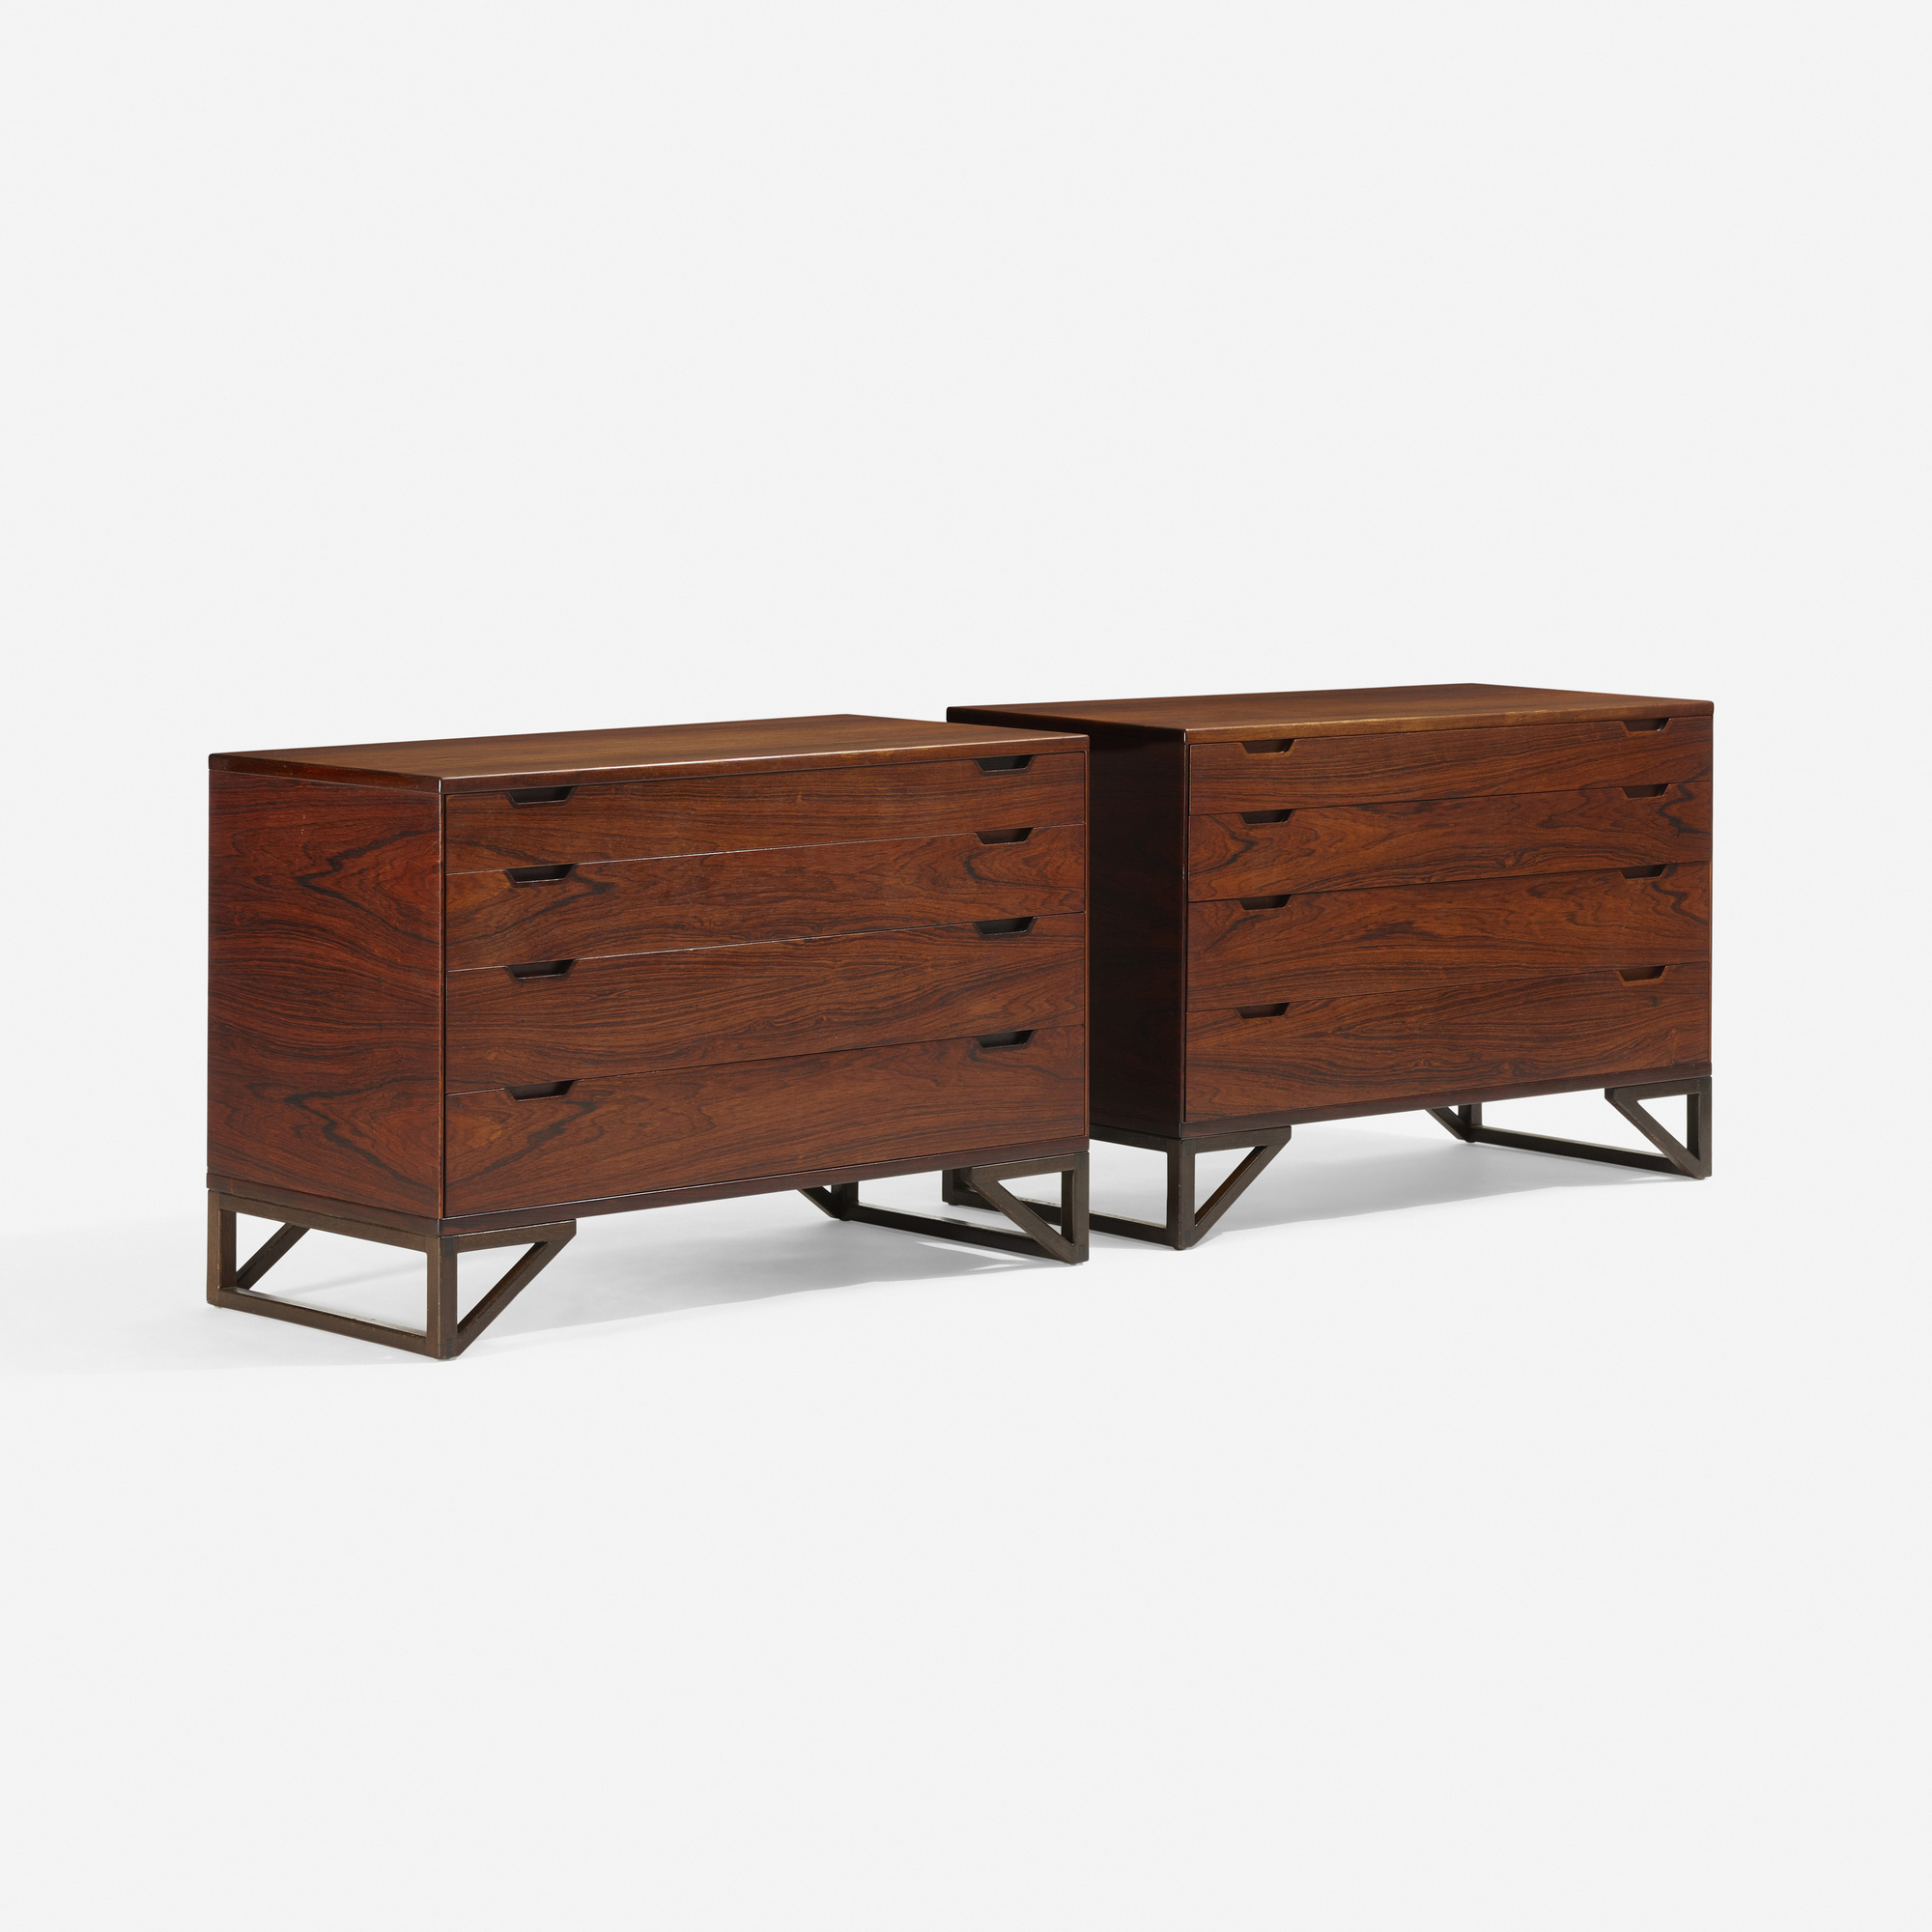 297: Svend Langkilde / cabinets, pair (2 of 4)